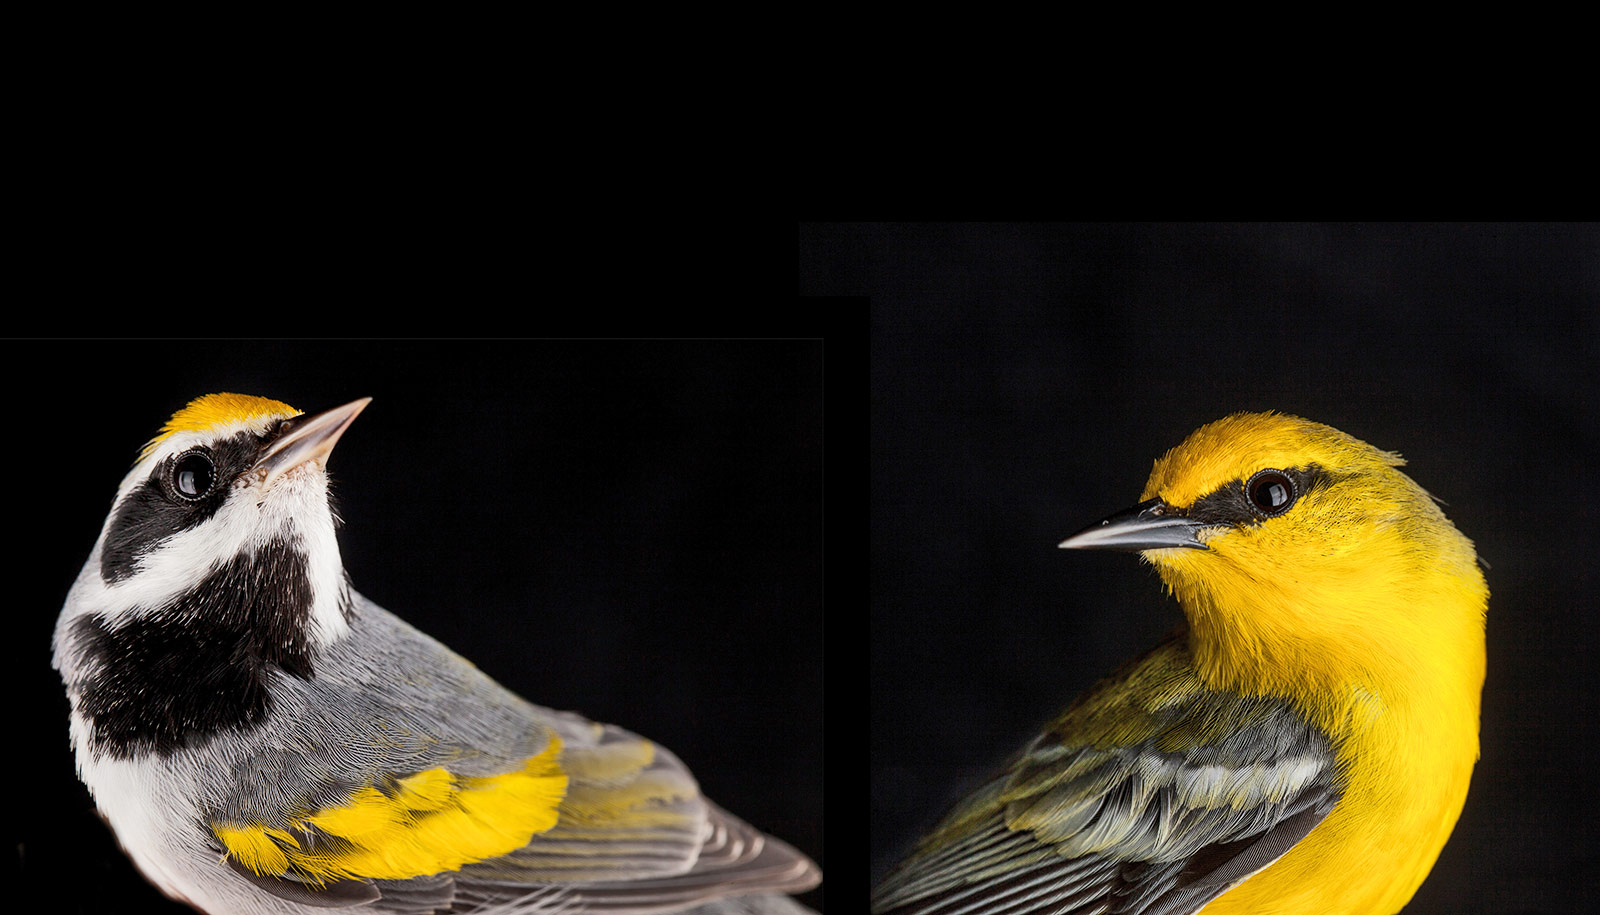 Gene linked to where warblers migrate for the winter